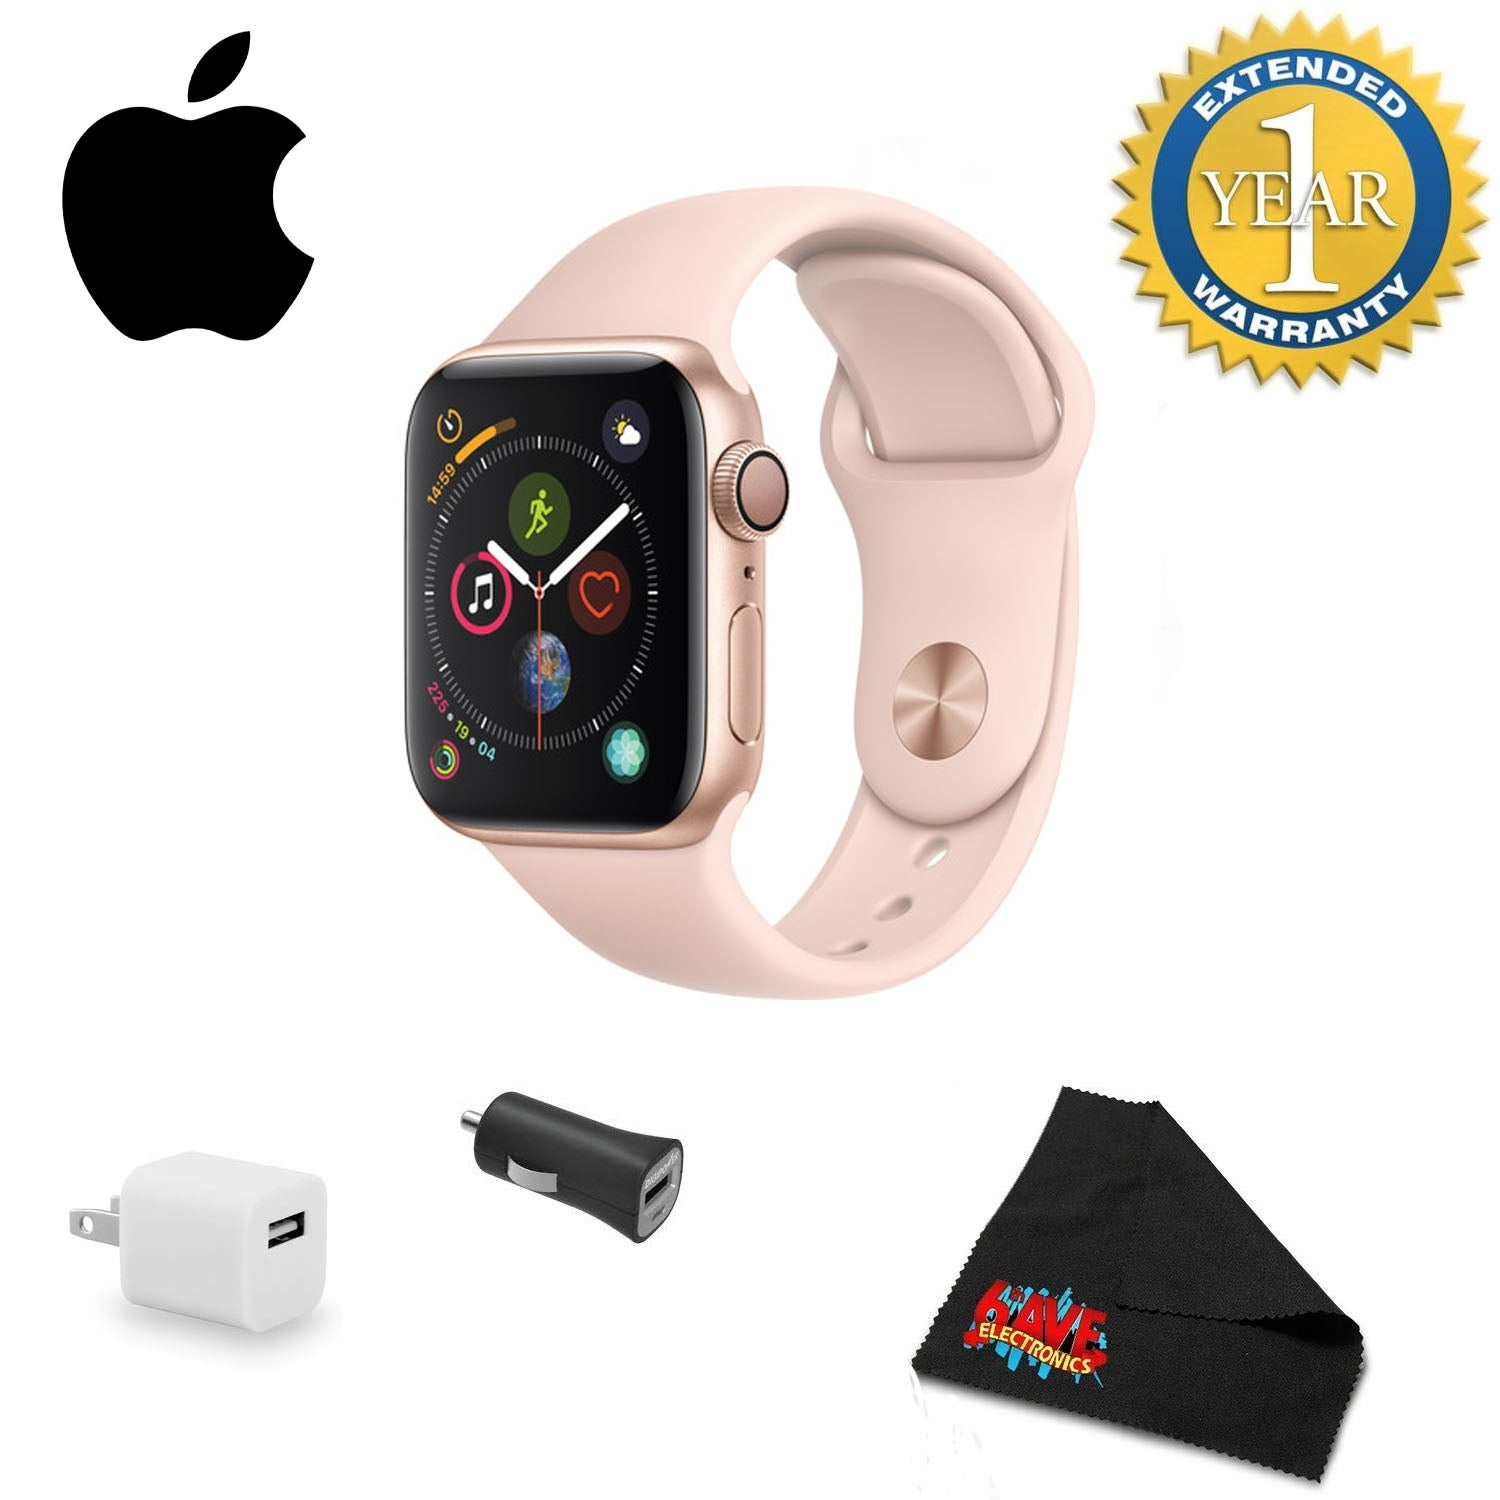 Apple Watch Series 4 GPS Only, 40mm Bundle w/ Extended Warranty gold aluminum - pink sand sport band